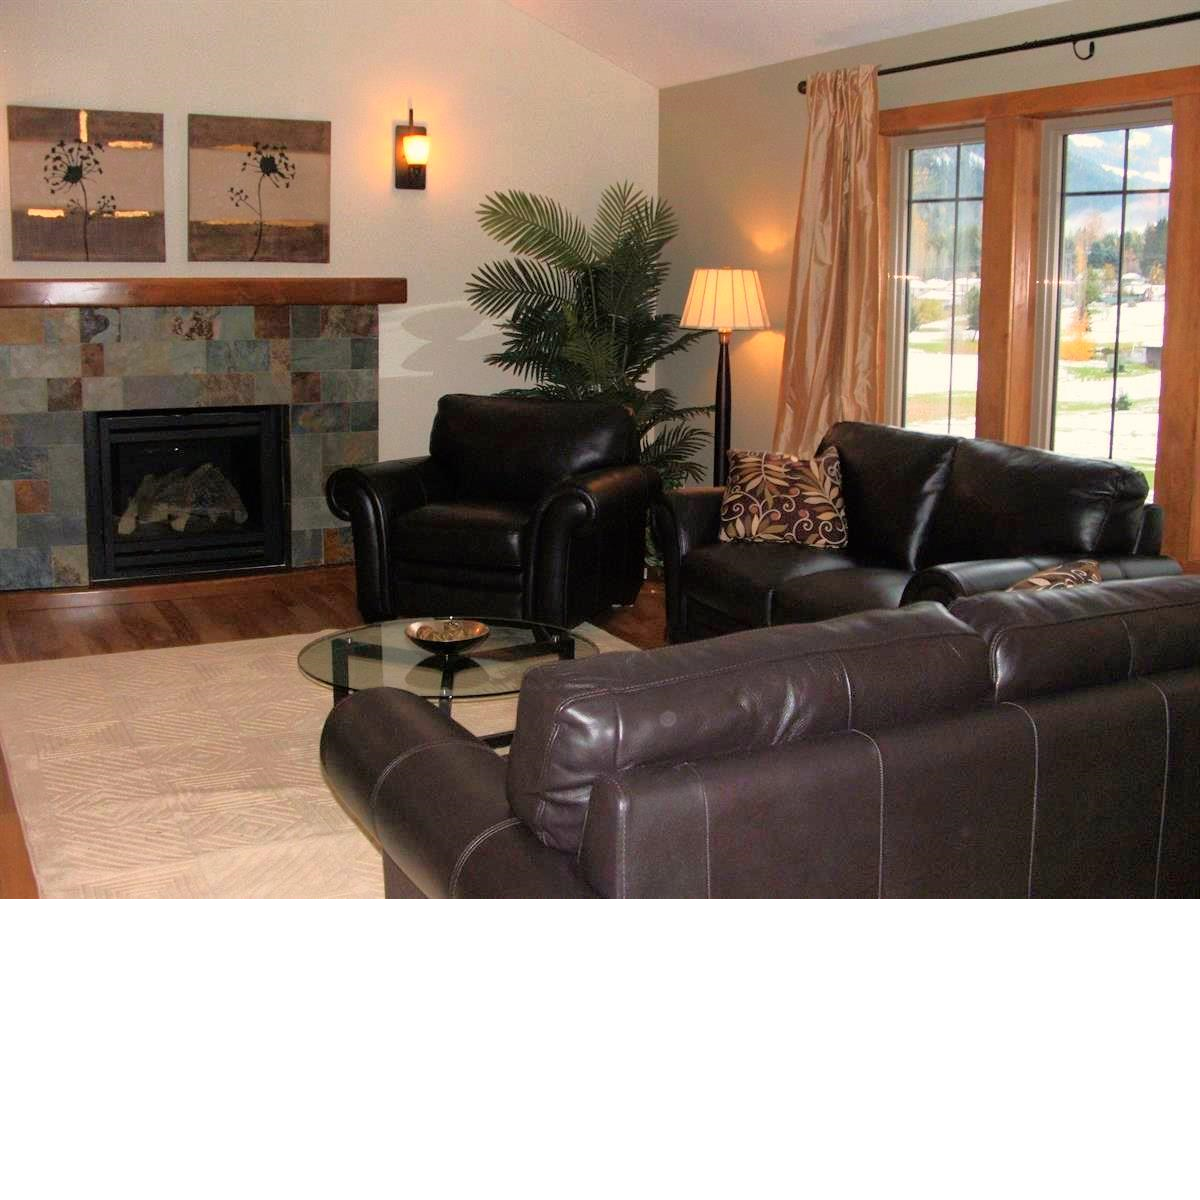 Kootenai Moon Furniture Living Room staging